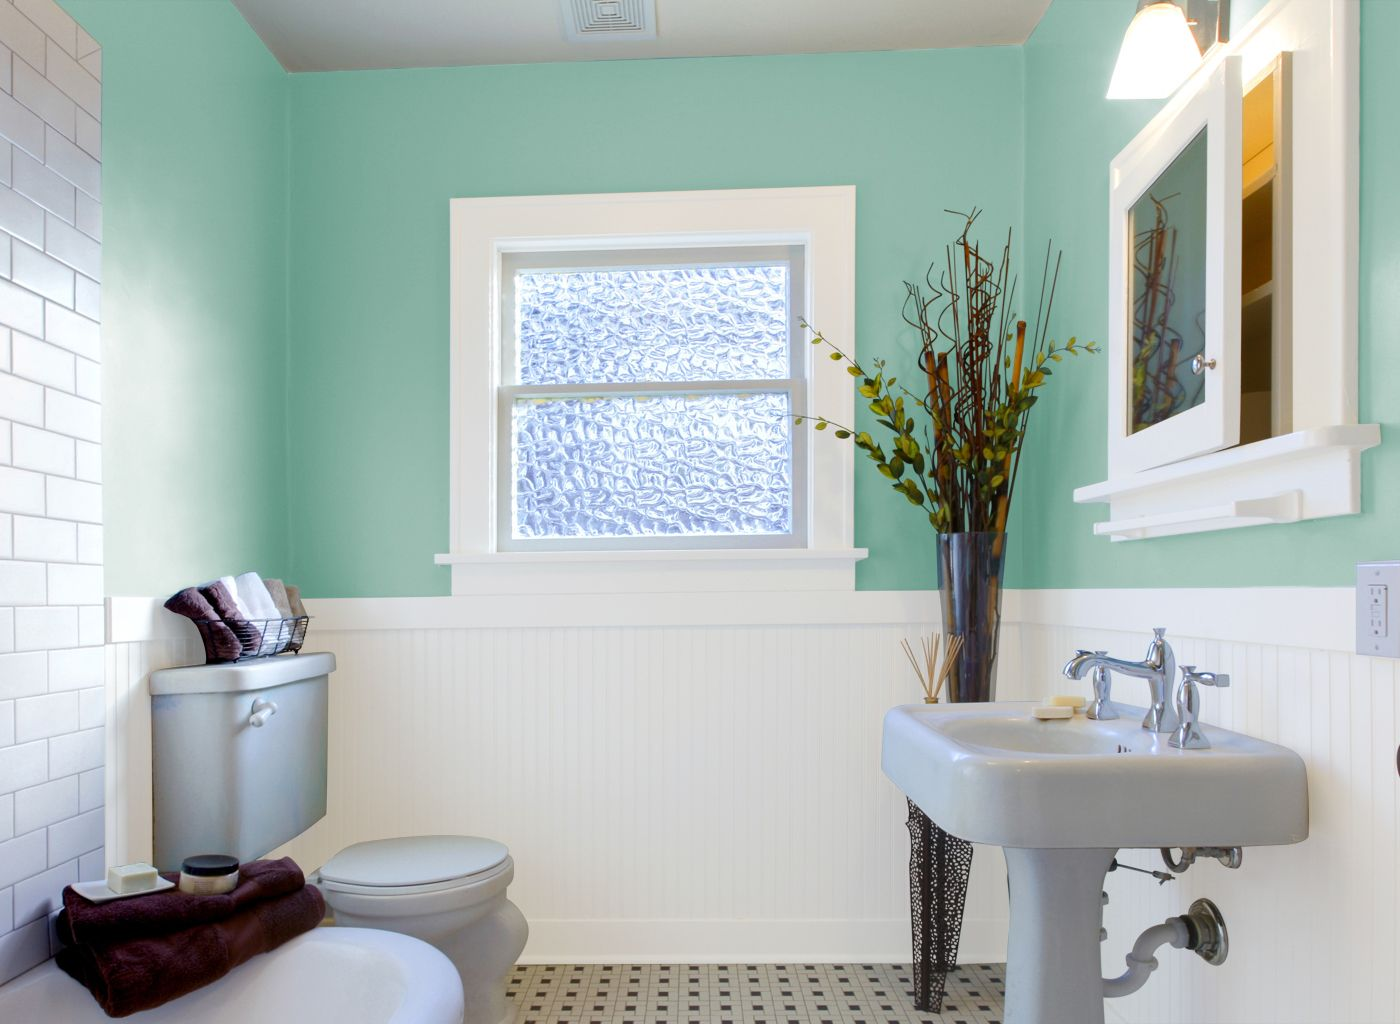 Glidden capri teal paint colors pinterest blue for Blue green bathroom ideas